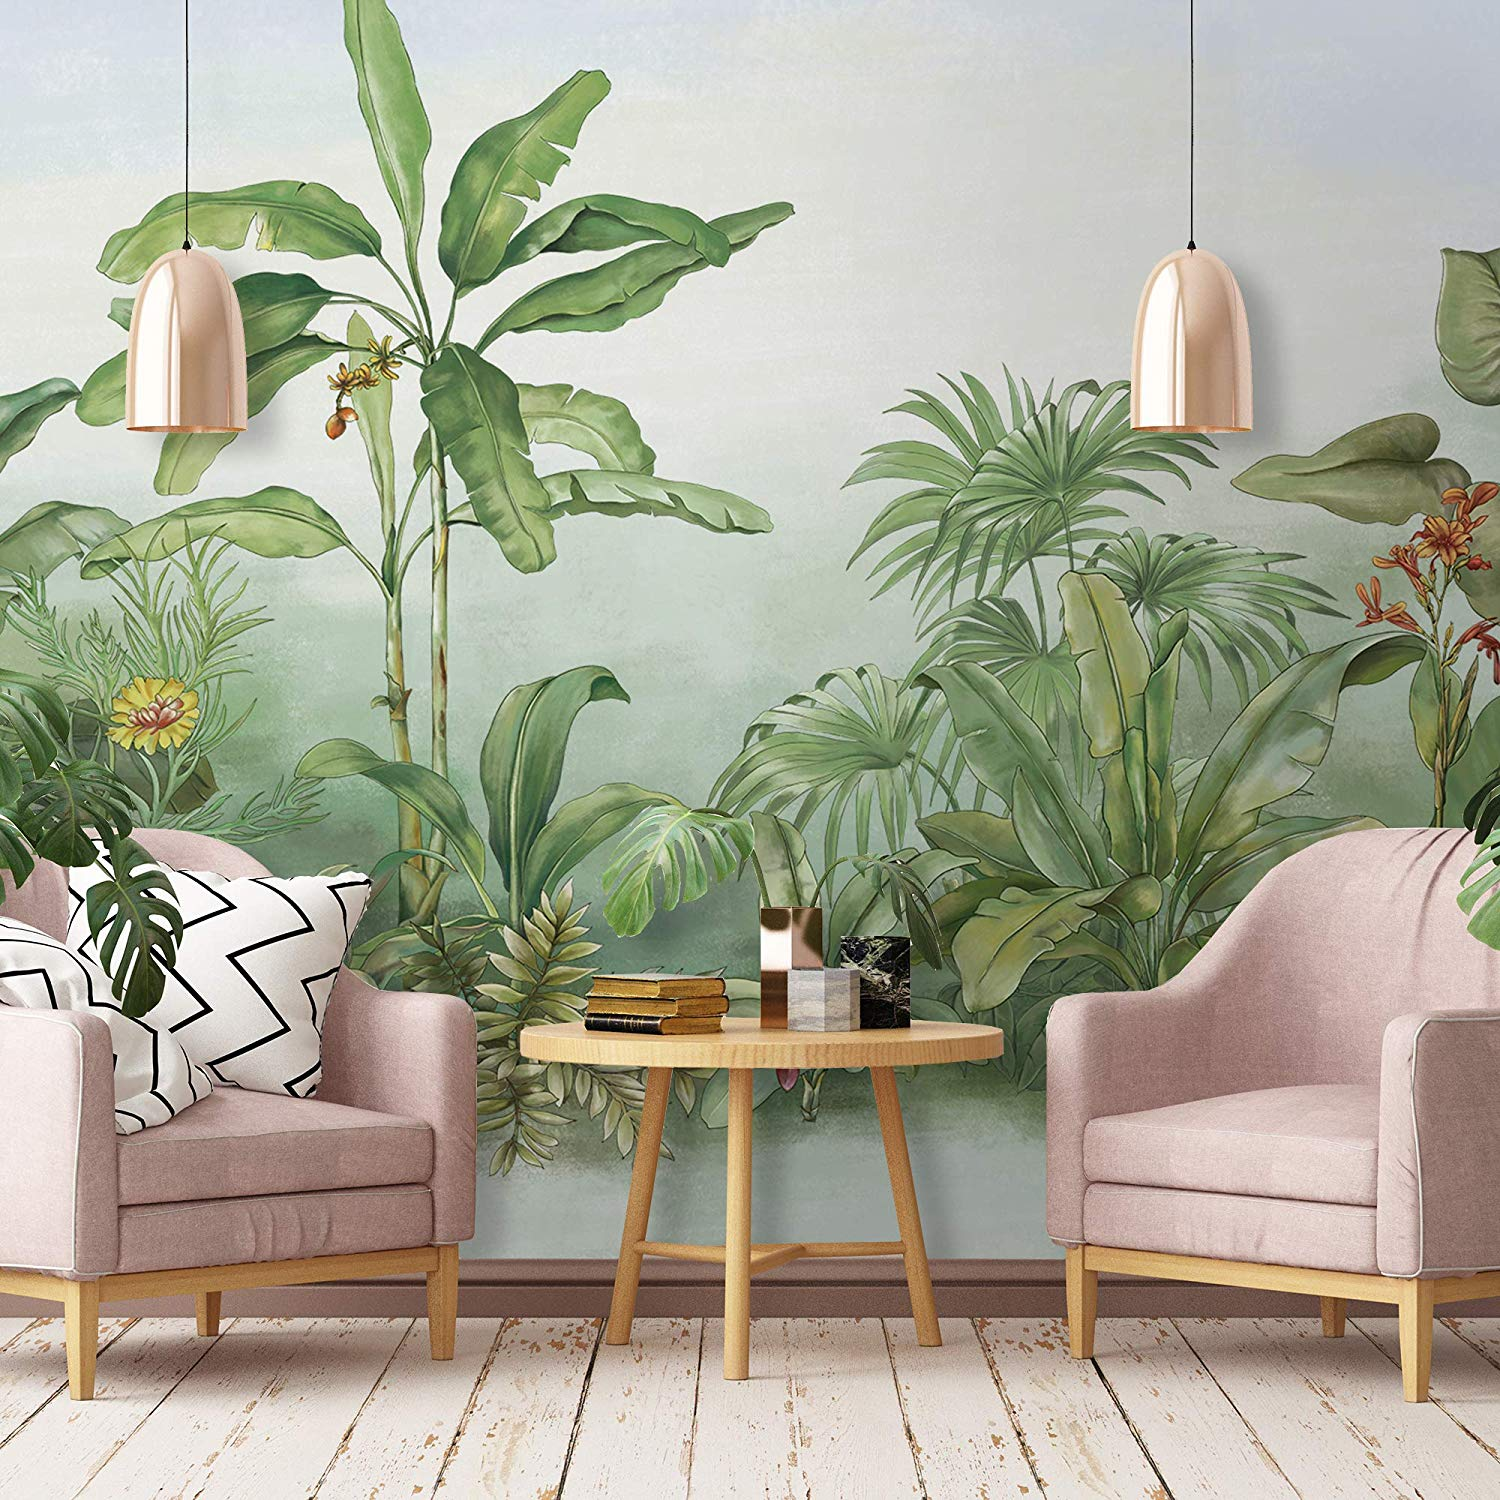 Murwall Forest Wallpaper Jungle Wall Mural Drawing - Paint Leaves On Wall - HD Wallpaper